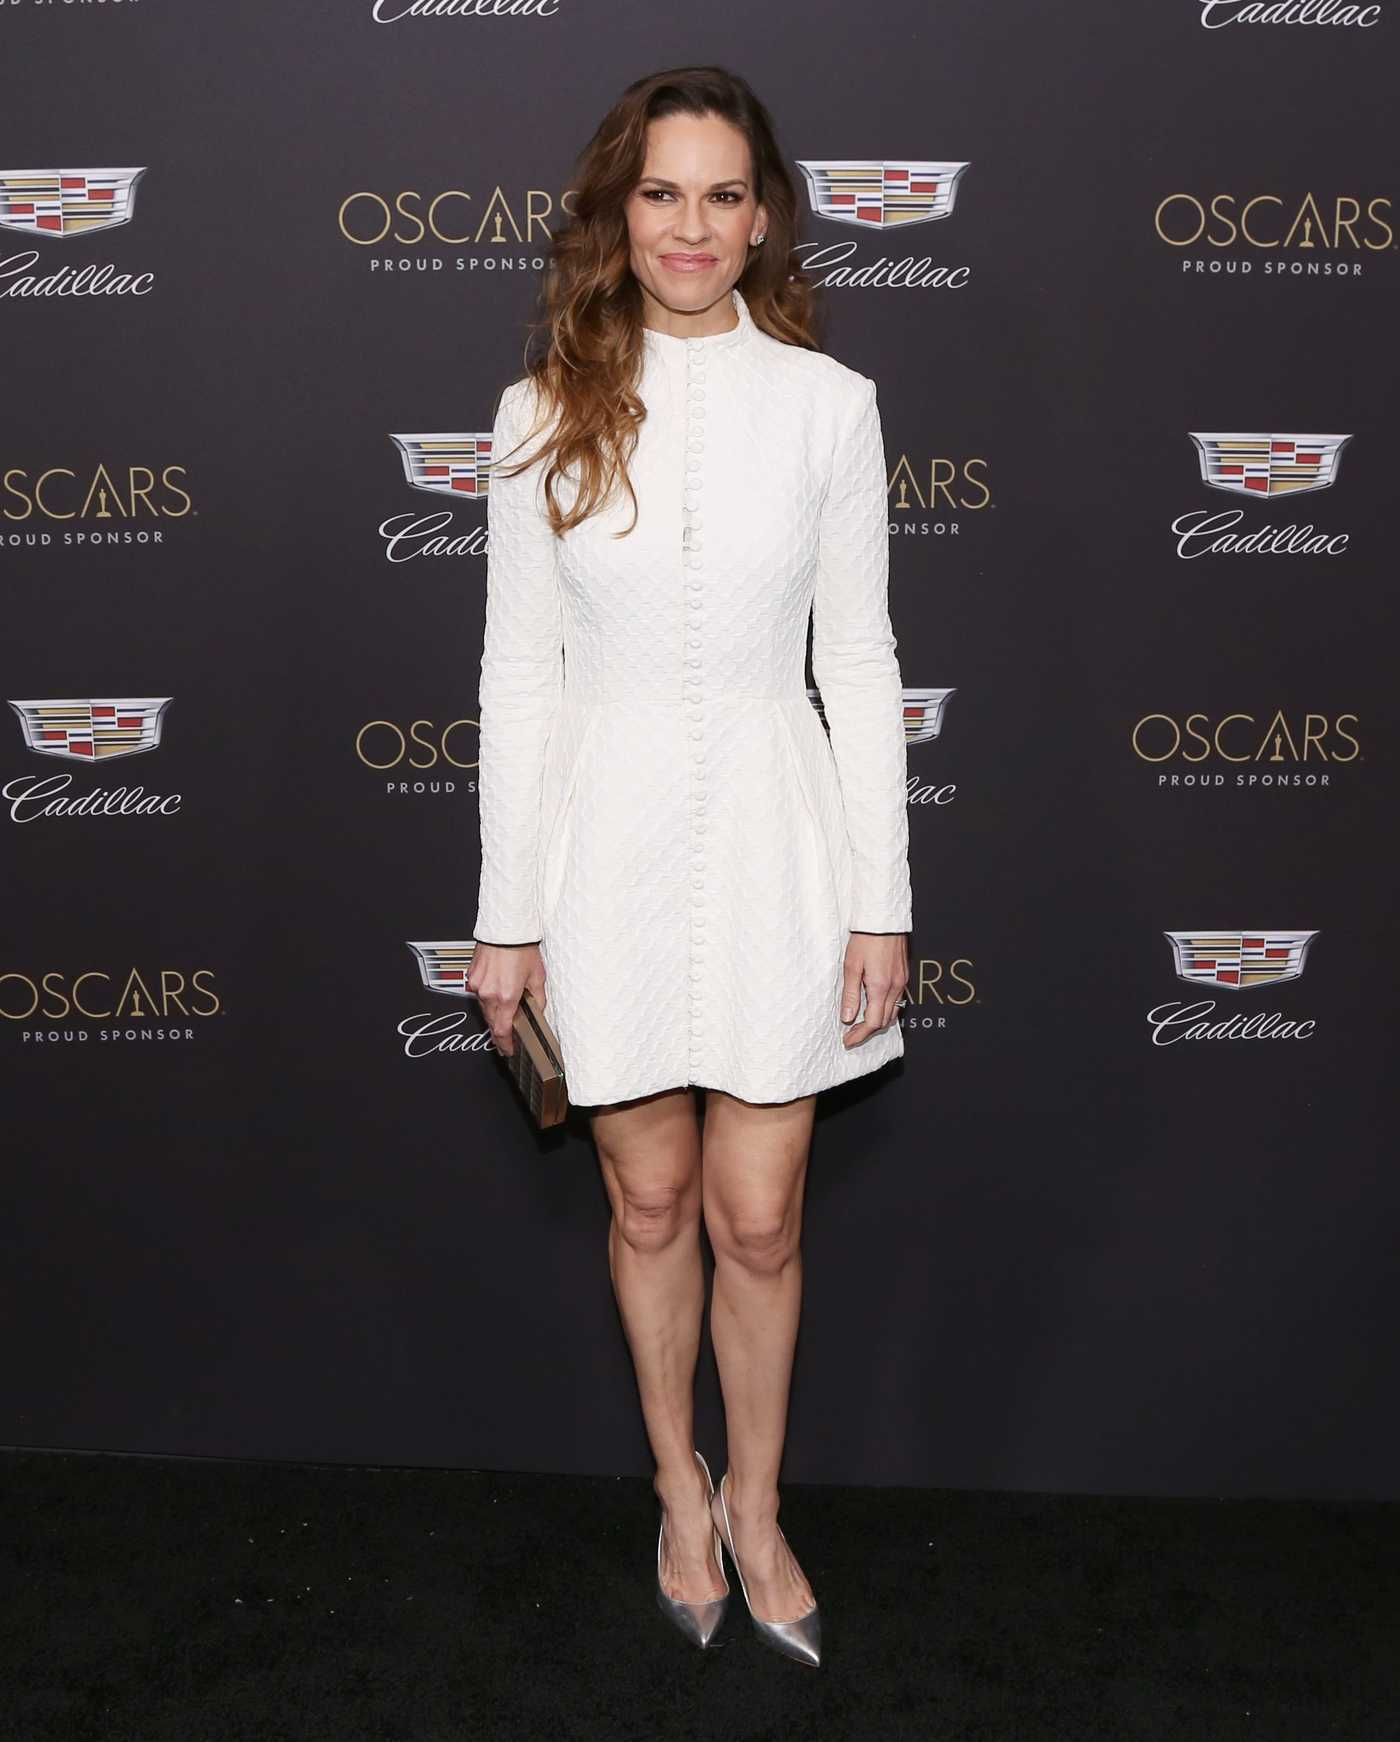 Hilary Swank Attends Cadillac Celebrates the 91st Annual Academy Awards in Los Angeles 02/21/2019